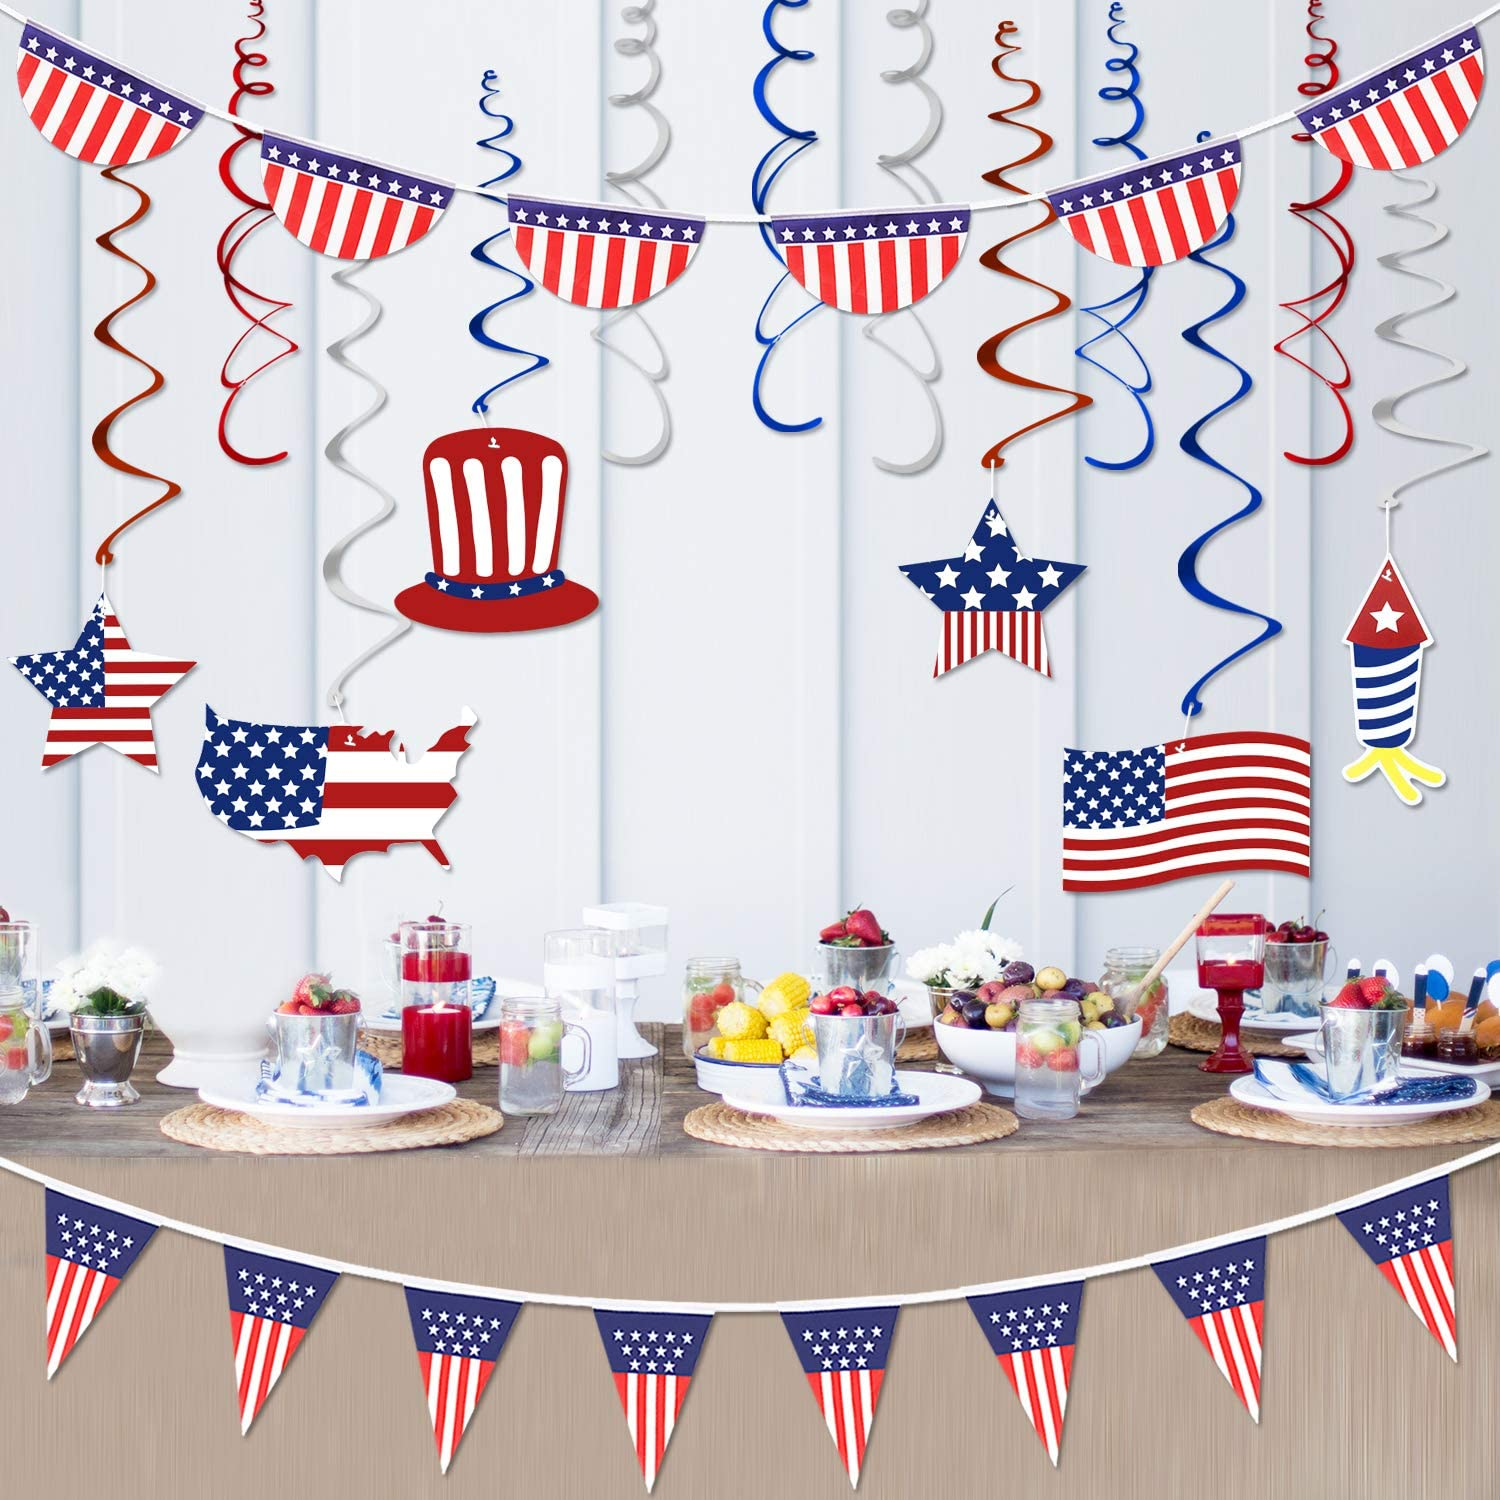 Amazon Com 4th Of July Decorations Patriotic Decorations Fourth Of July Patriotic Party Decorations Supplies Include 1hanging Swirl Kit 12pcs 1 American Usa Polyester Bunting Pennant 1 Half Fan Patriotic Bunting